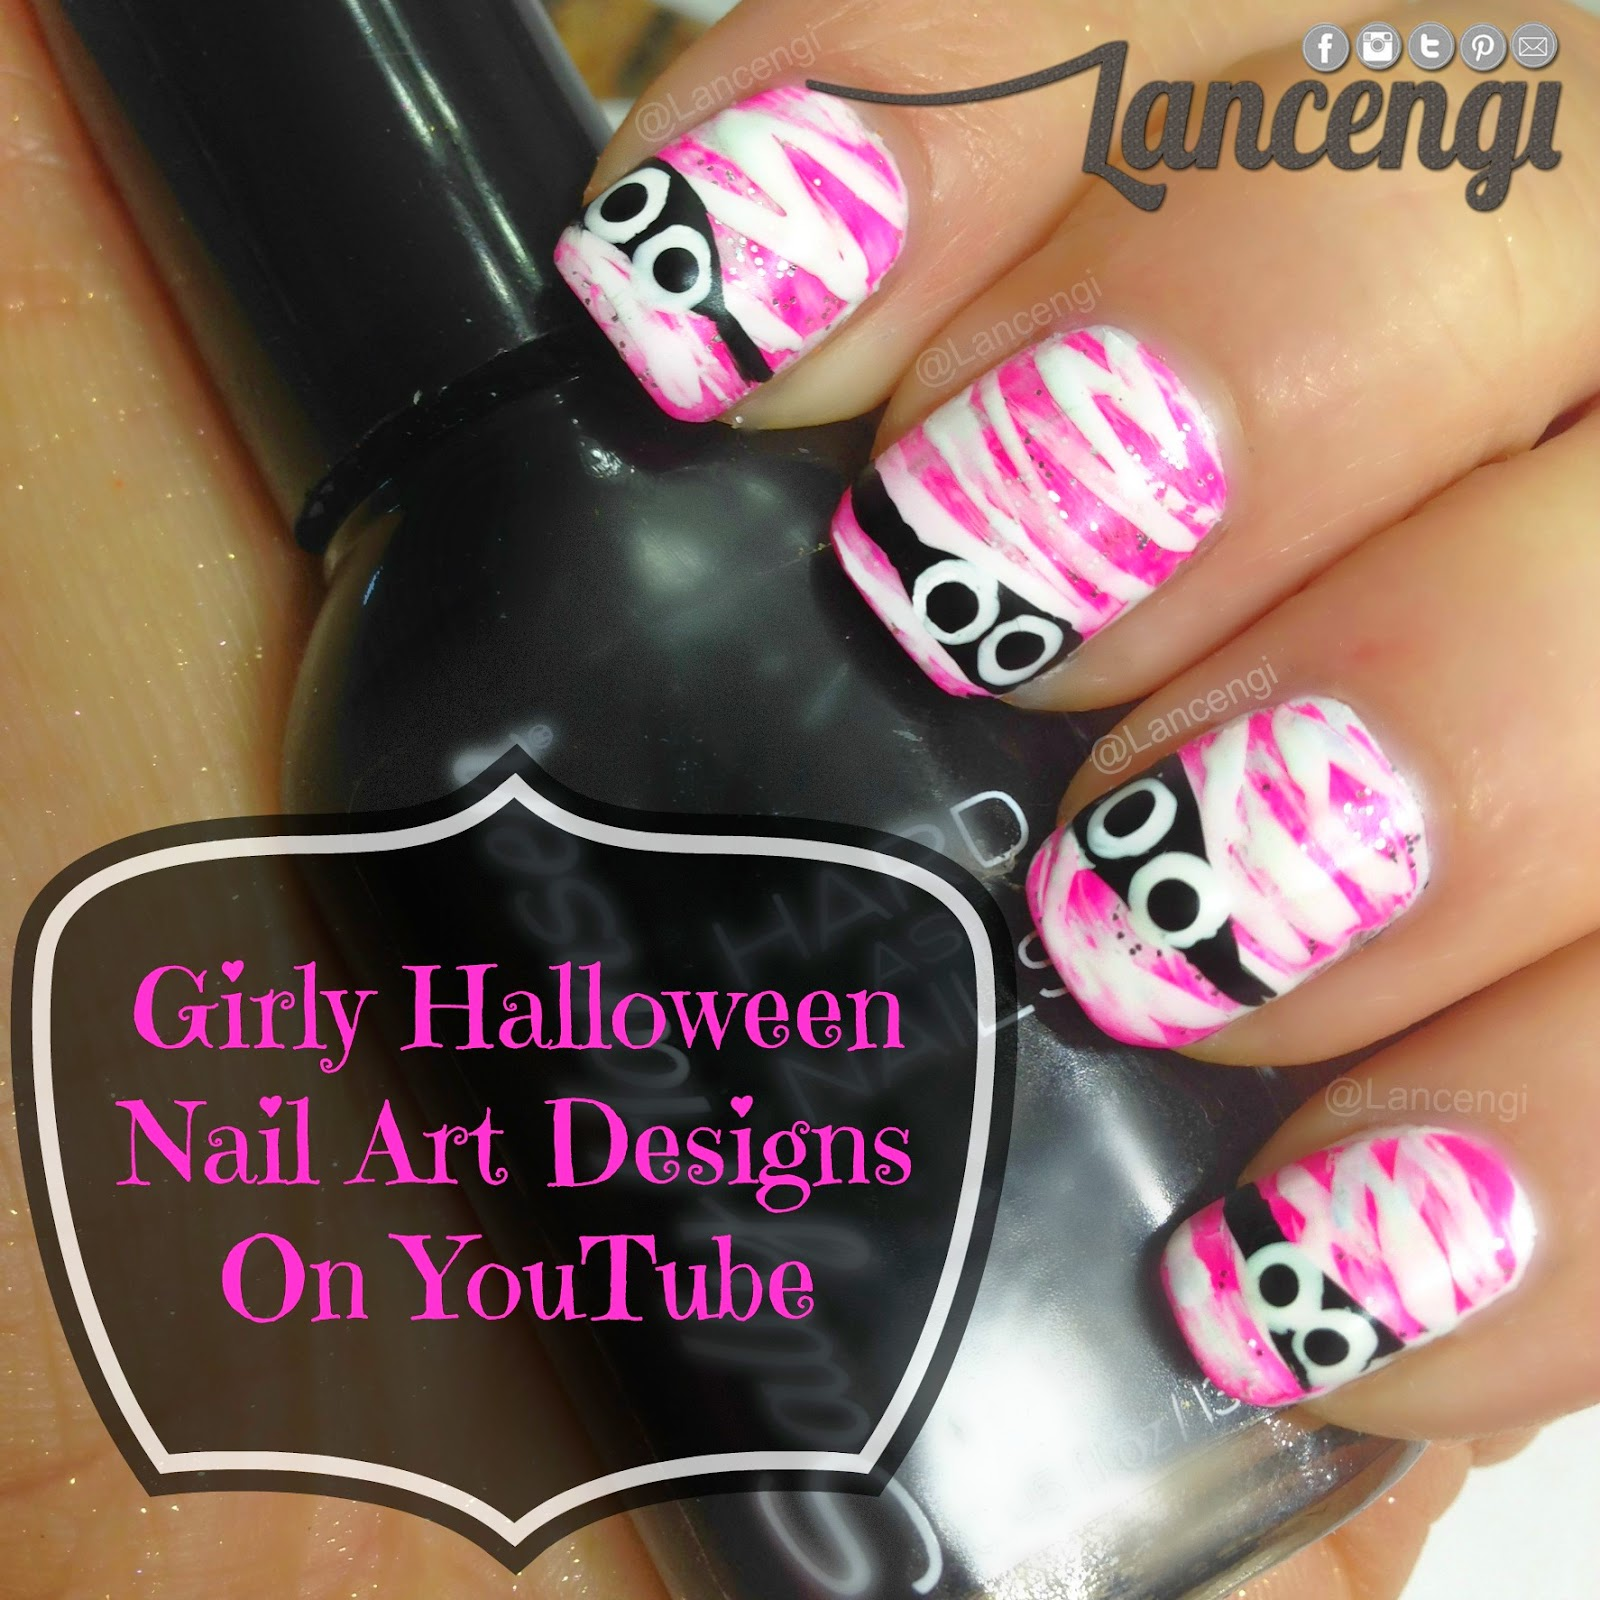 Cute and girly halloween nail designs for beginners lancengi click on any of the names below to shop this video prinsesfo Choice Image